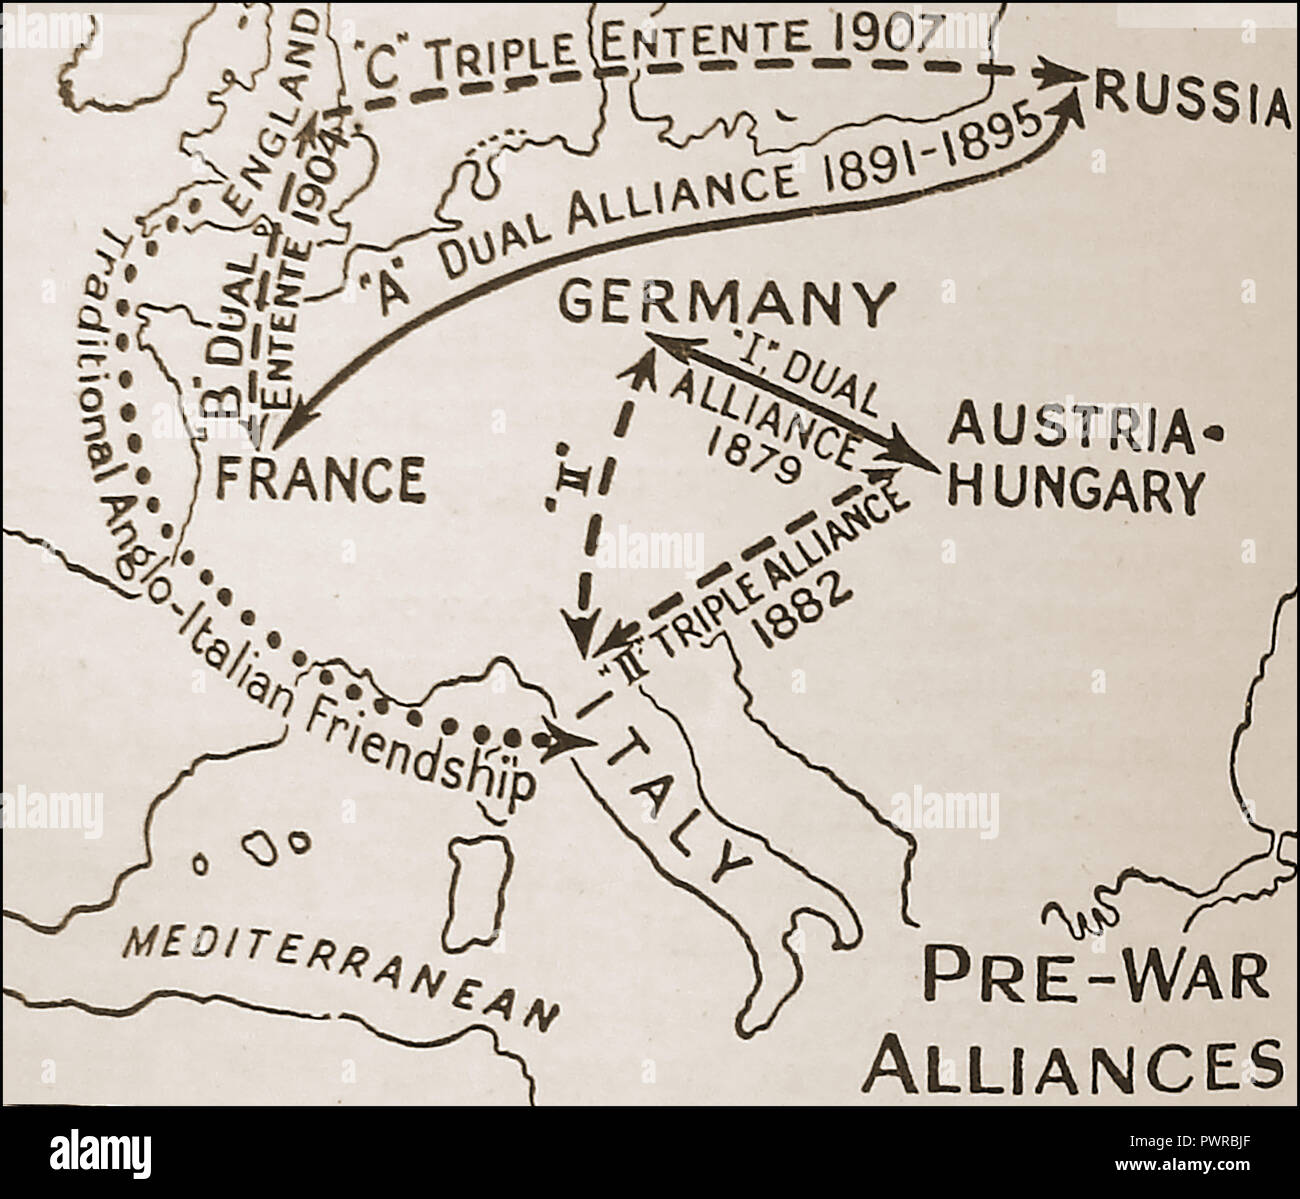 what countries were in the triple alliance